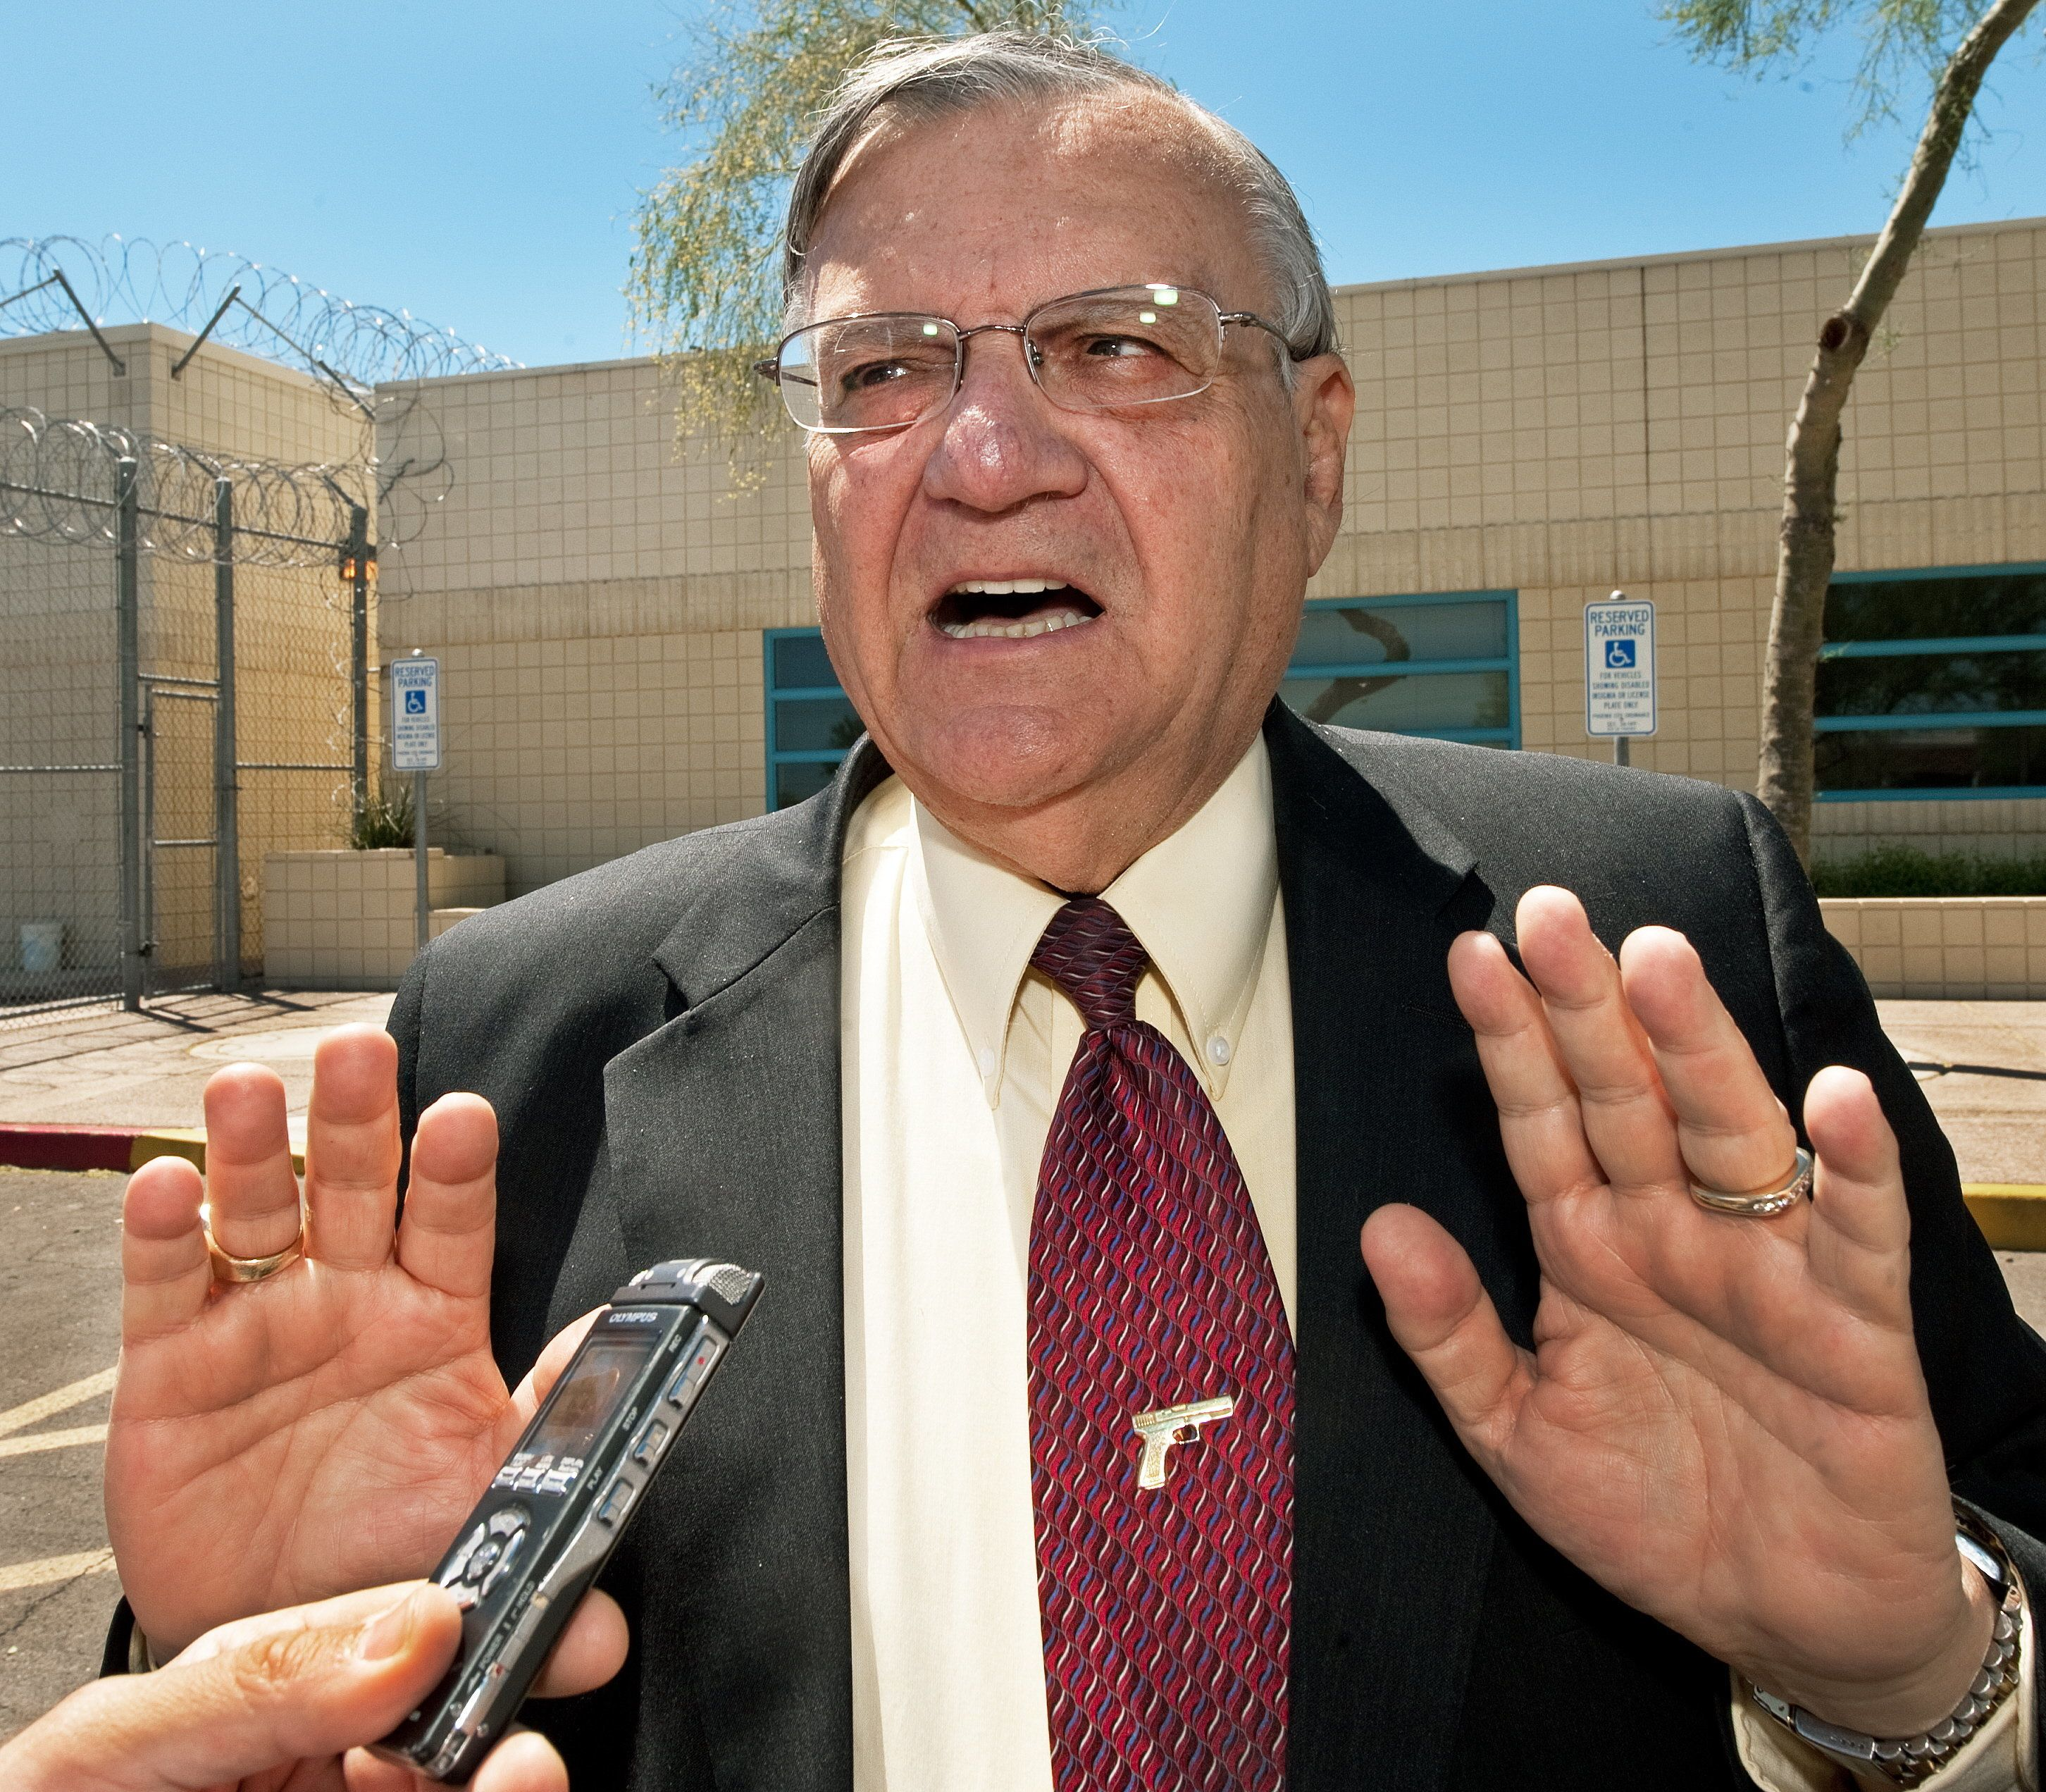 (FILES) Maricopa County Sheriff Joe Arpaio speaks with a reporter outside city jail in this May 3, 2010, file photo. The US Justice Department on May 10, 2012 sued Arpaio, his office and the county over civil rights violations involving racial profiling.   AFP Photo/Paul J. Richards/FILES        (Photo credit should read PAUL J. RICHARDS/AFP/GettyImages)